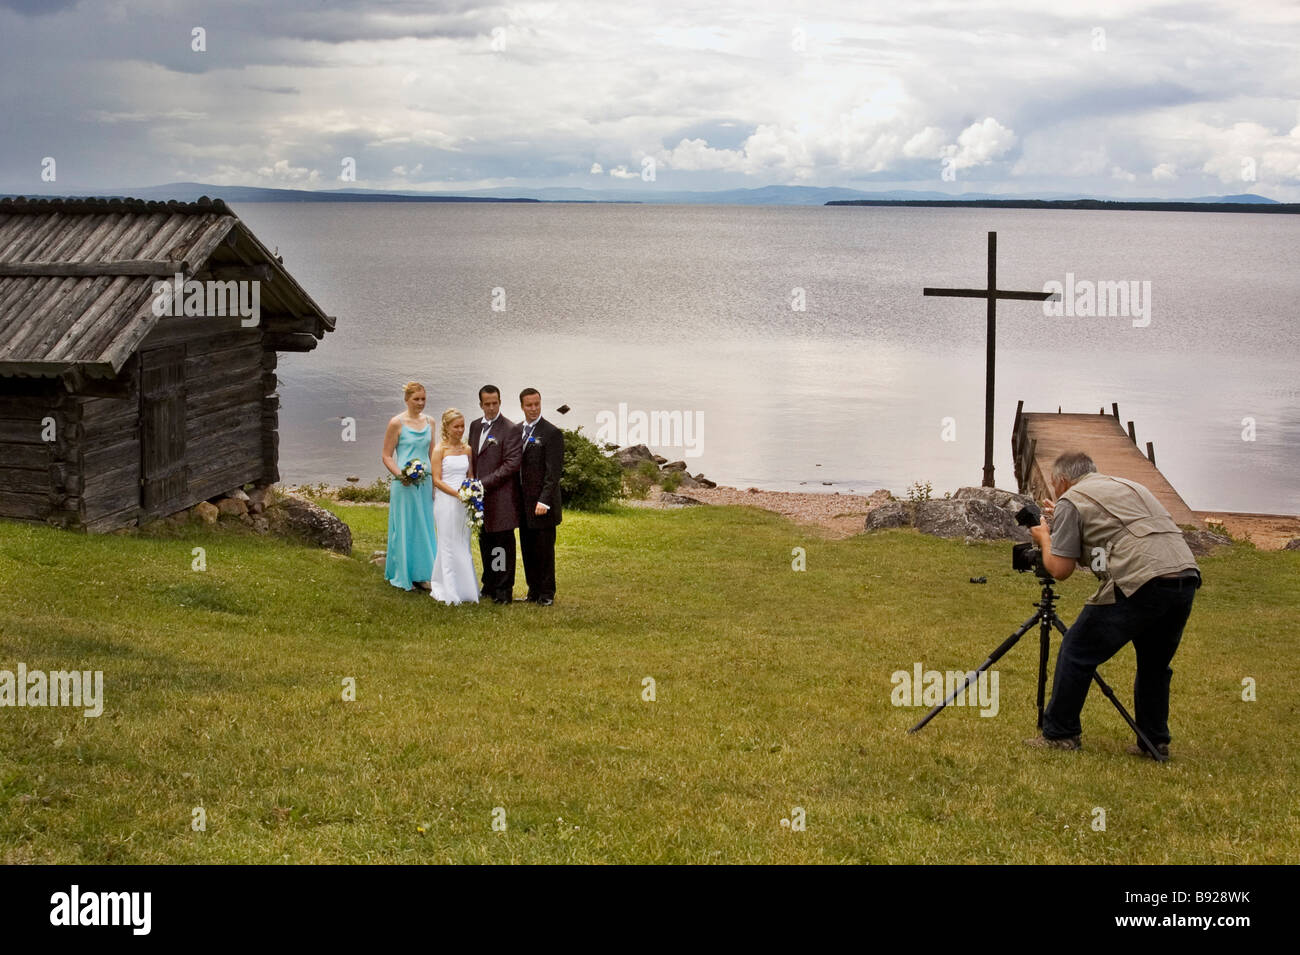 Marriage photography in Dalarna north of Sweden - Stock Image